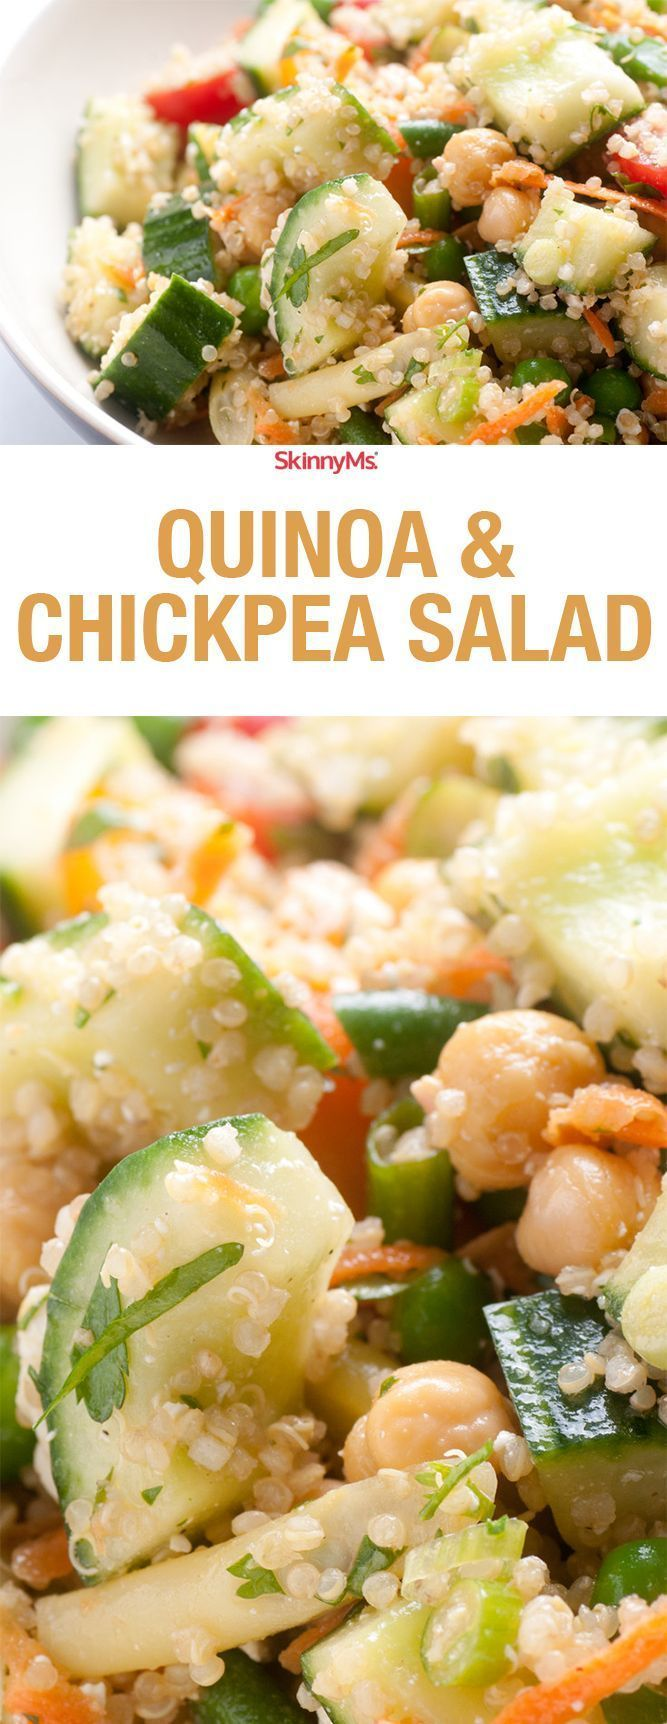 Quinoa & Chickpea Salad - Quinoa & Chickpeas are my favorite plant based proteins. Try this refreshing salad for lunch this week! :)